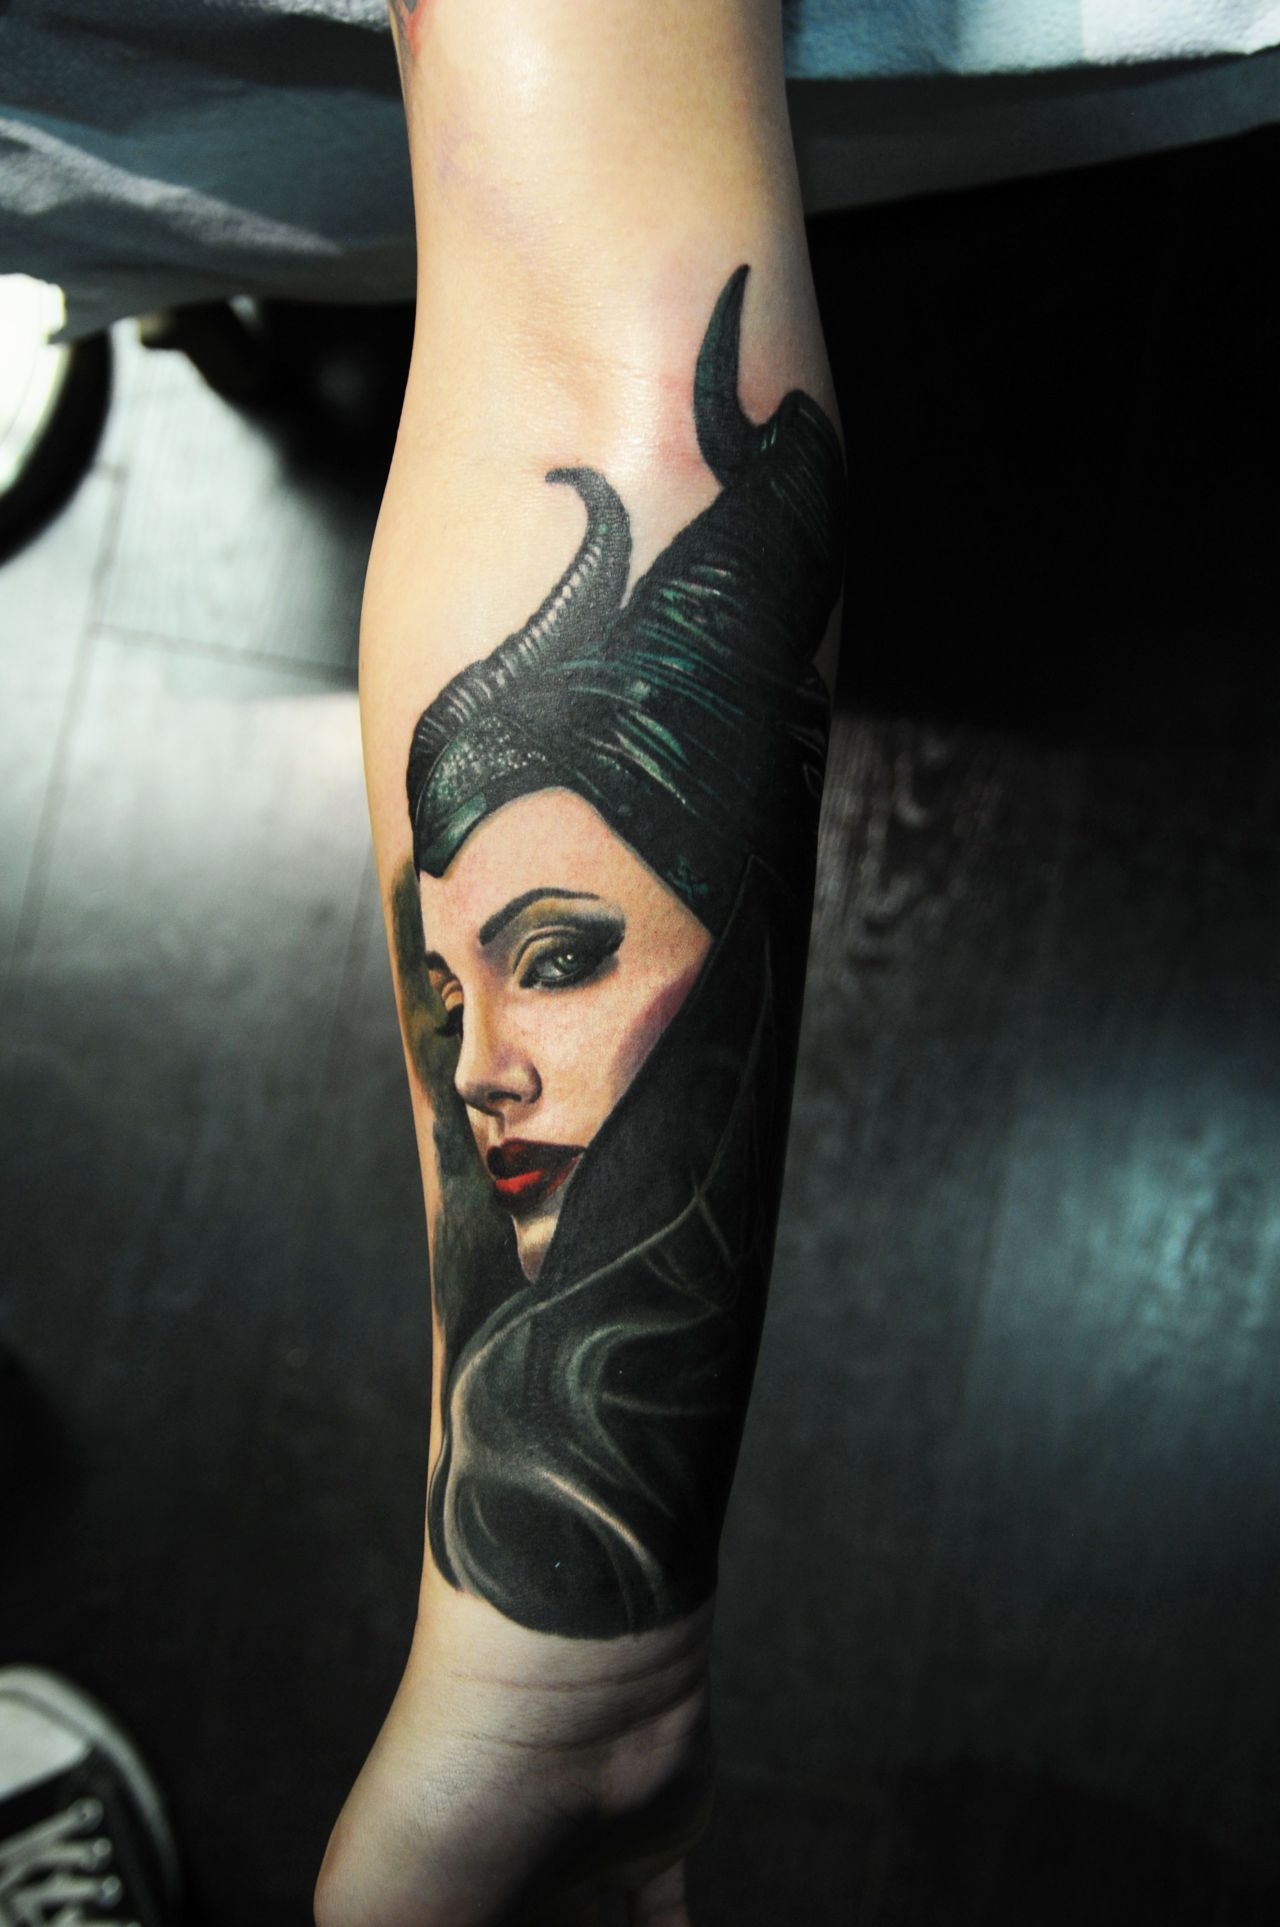 The First Movie Has Become One Of The Greatest Blockbusters Of The 21st Century All Thanks To The Performance Maleficent Tattoo Disney Sleeve Tattoos Tattoos